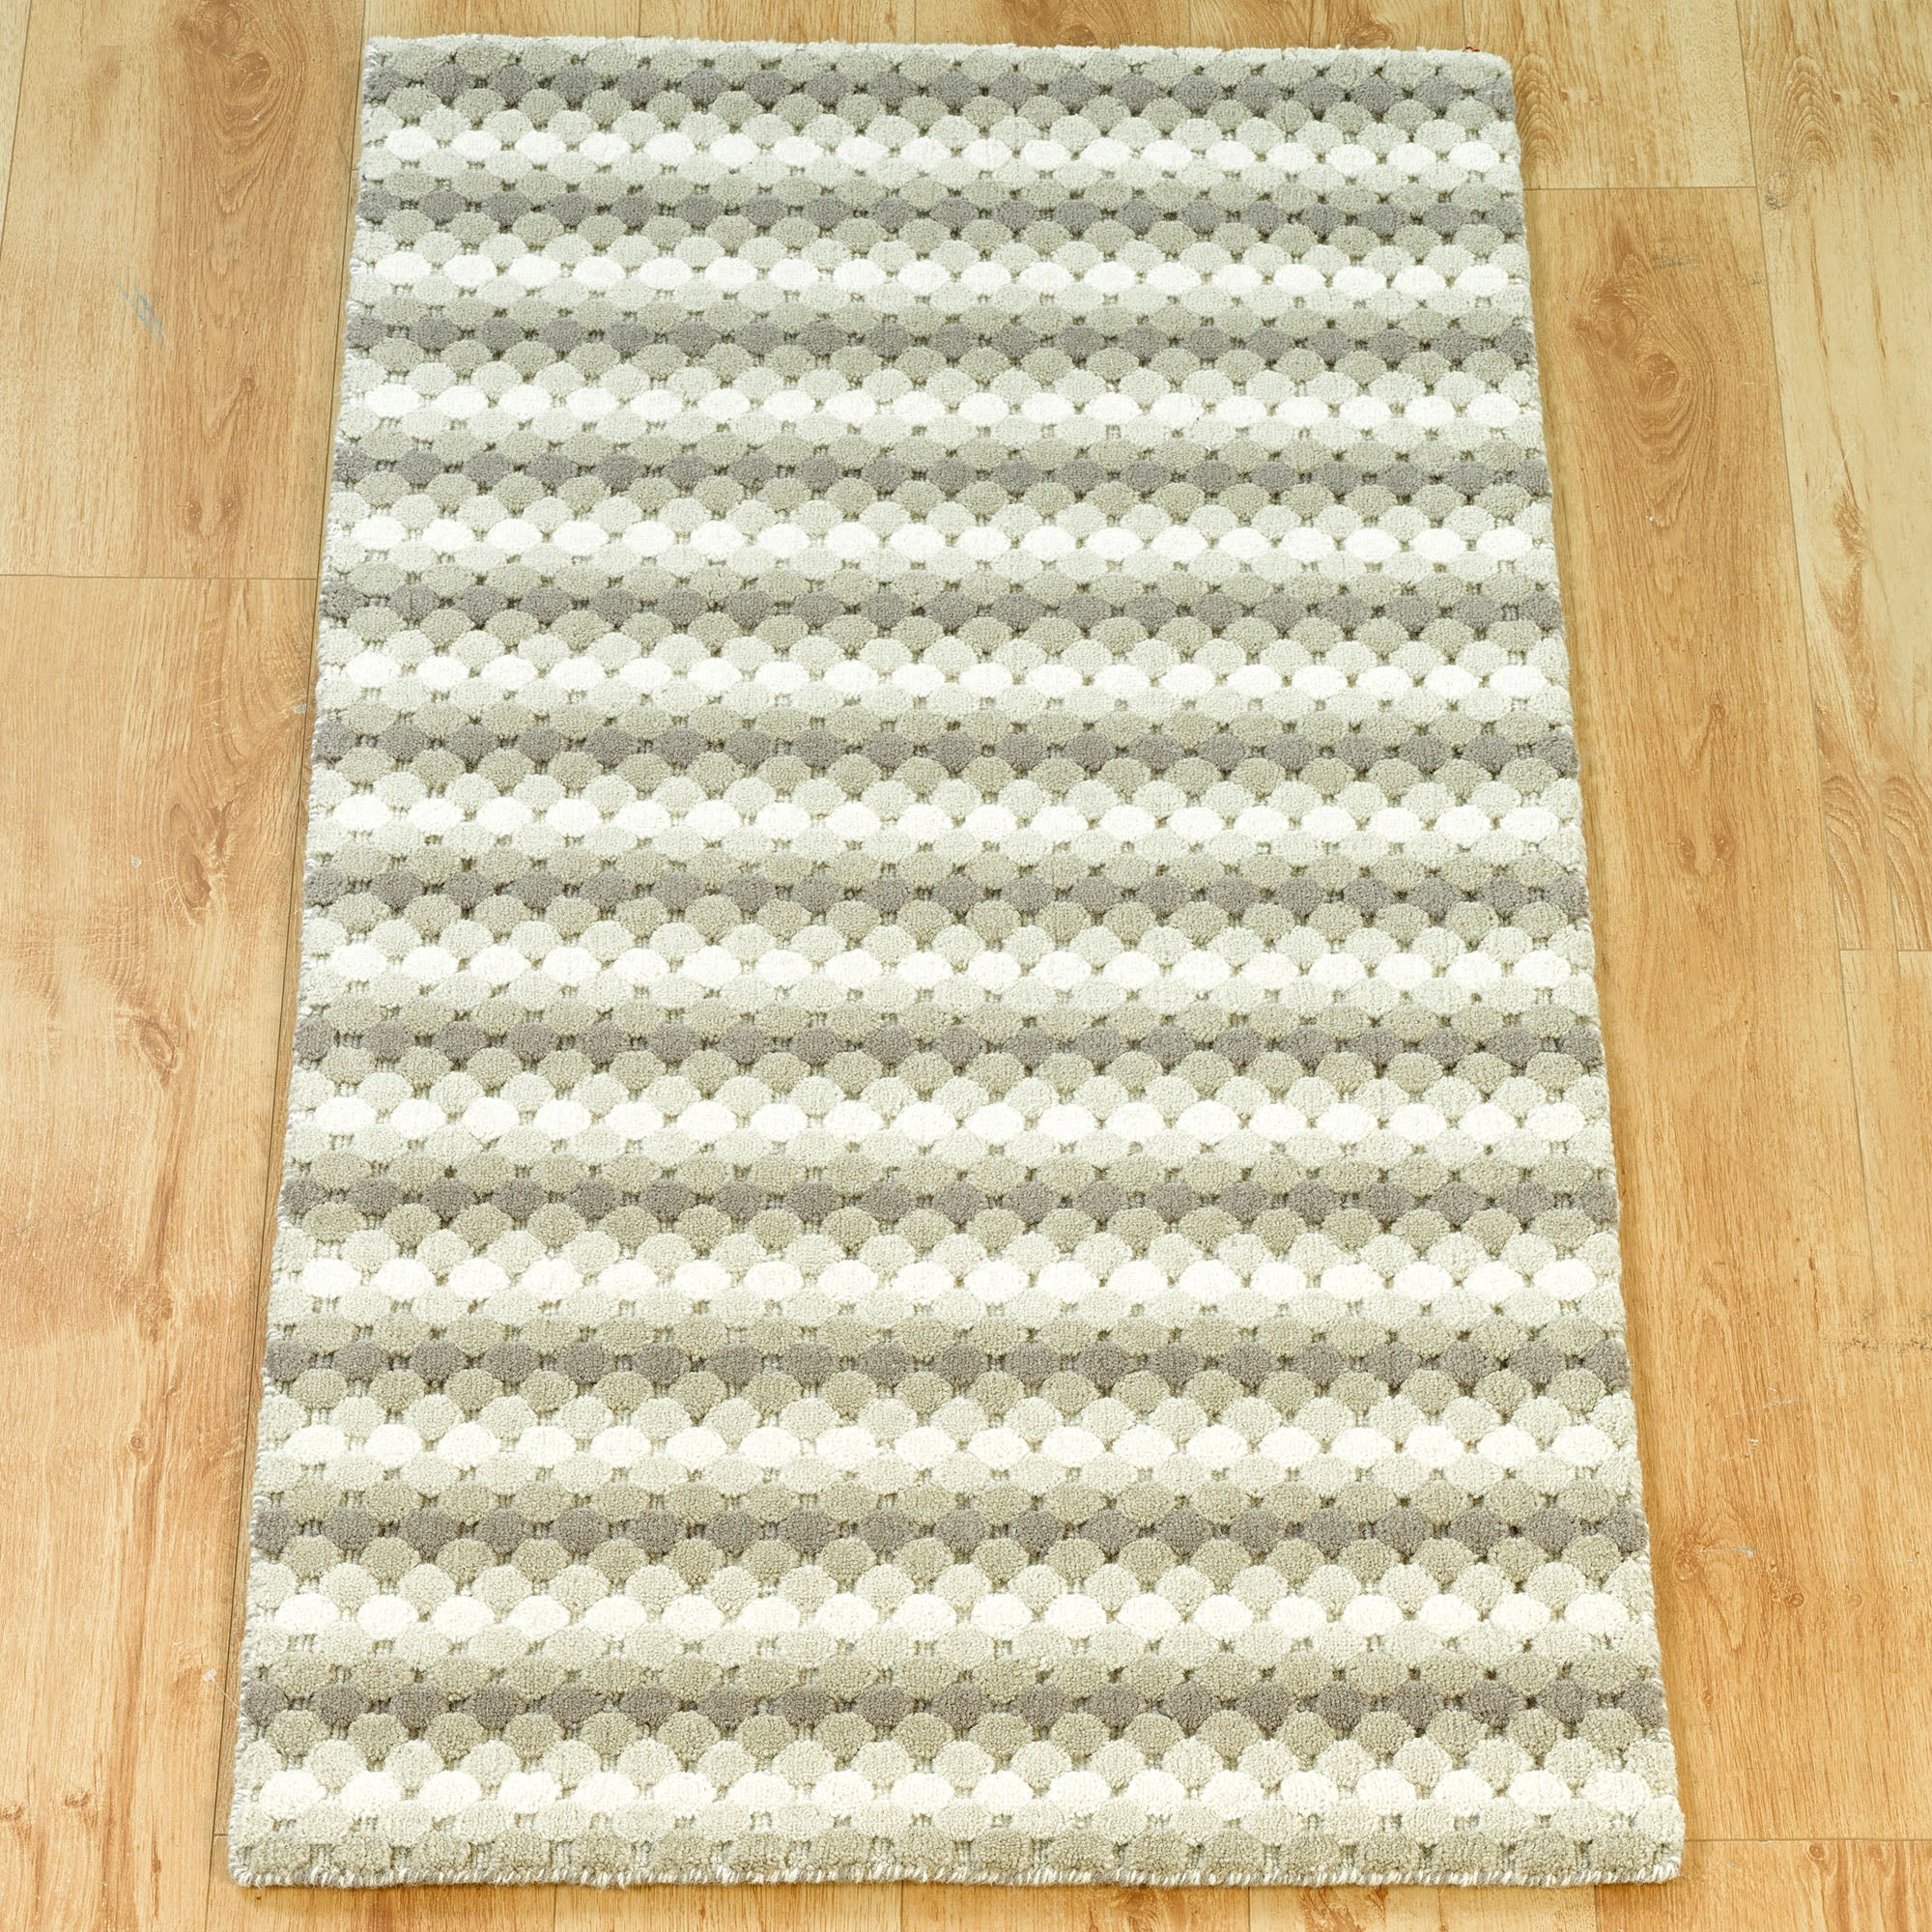 Natural Palermo Wool Rug